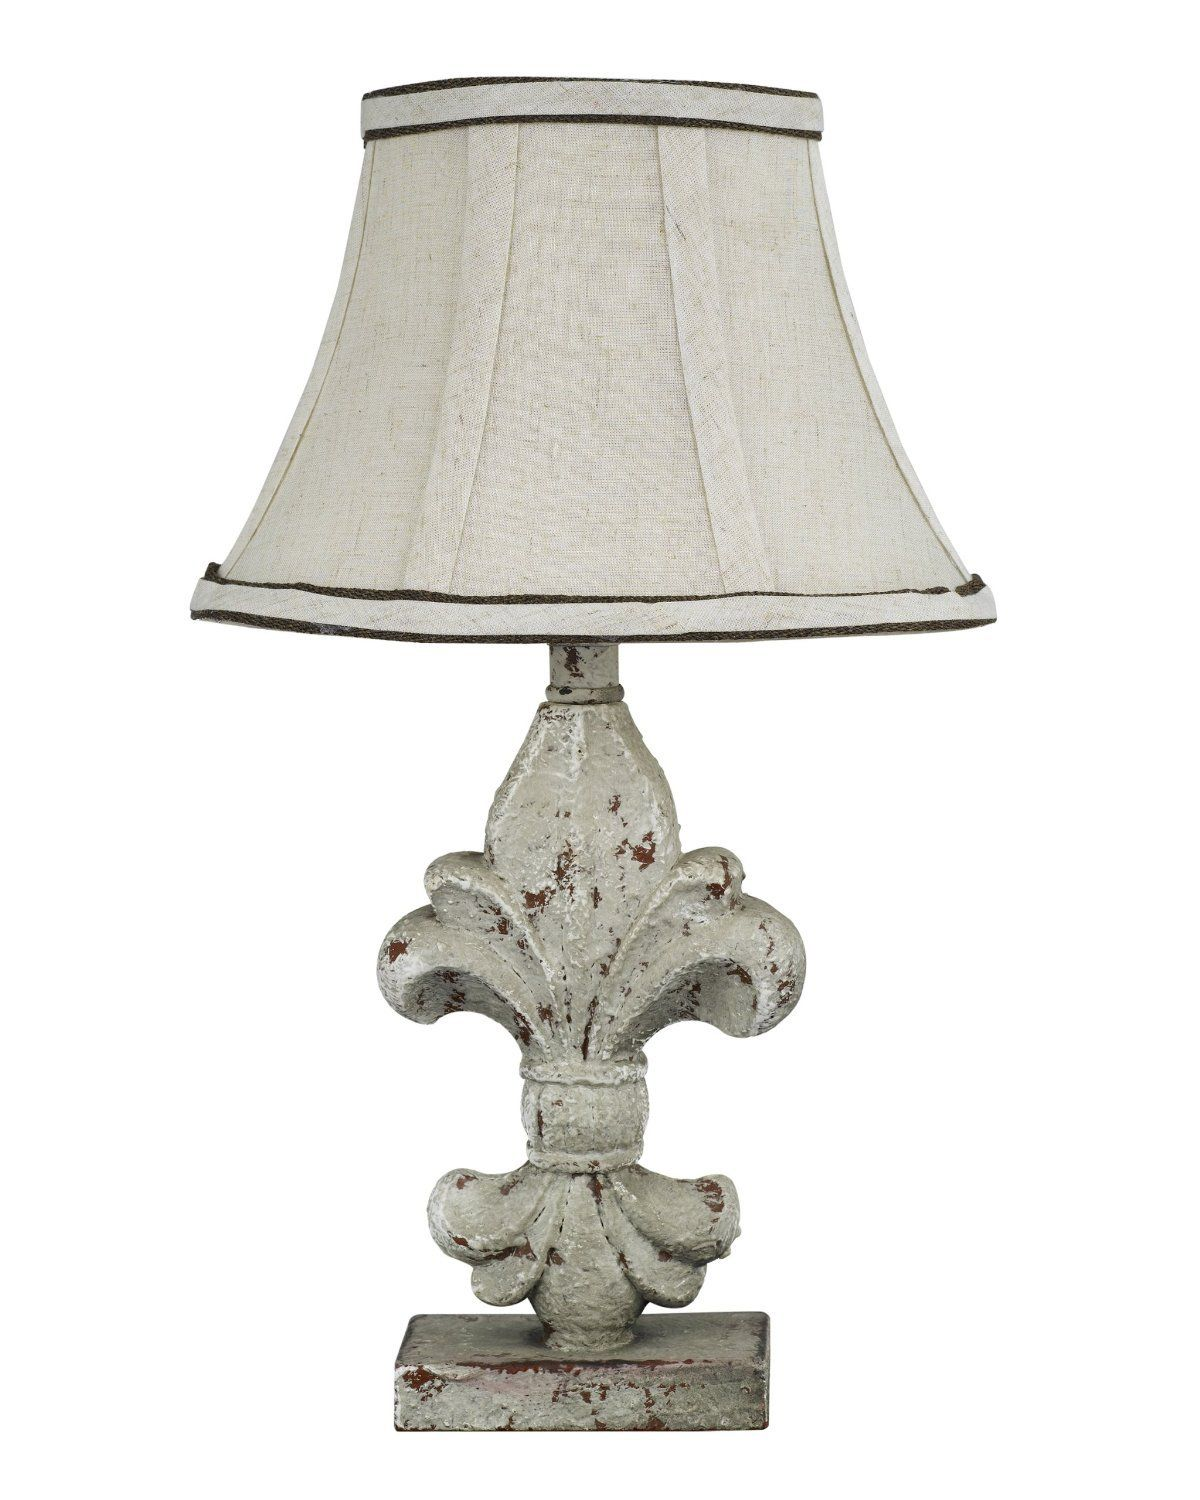 9 French Country Lamps For Every Price